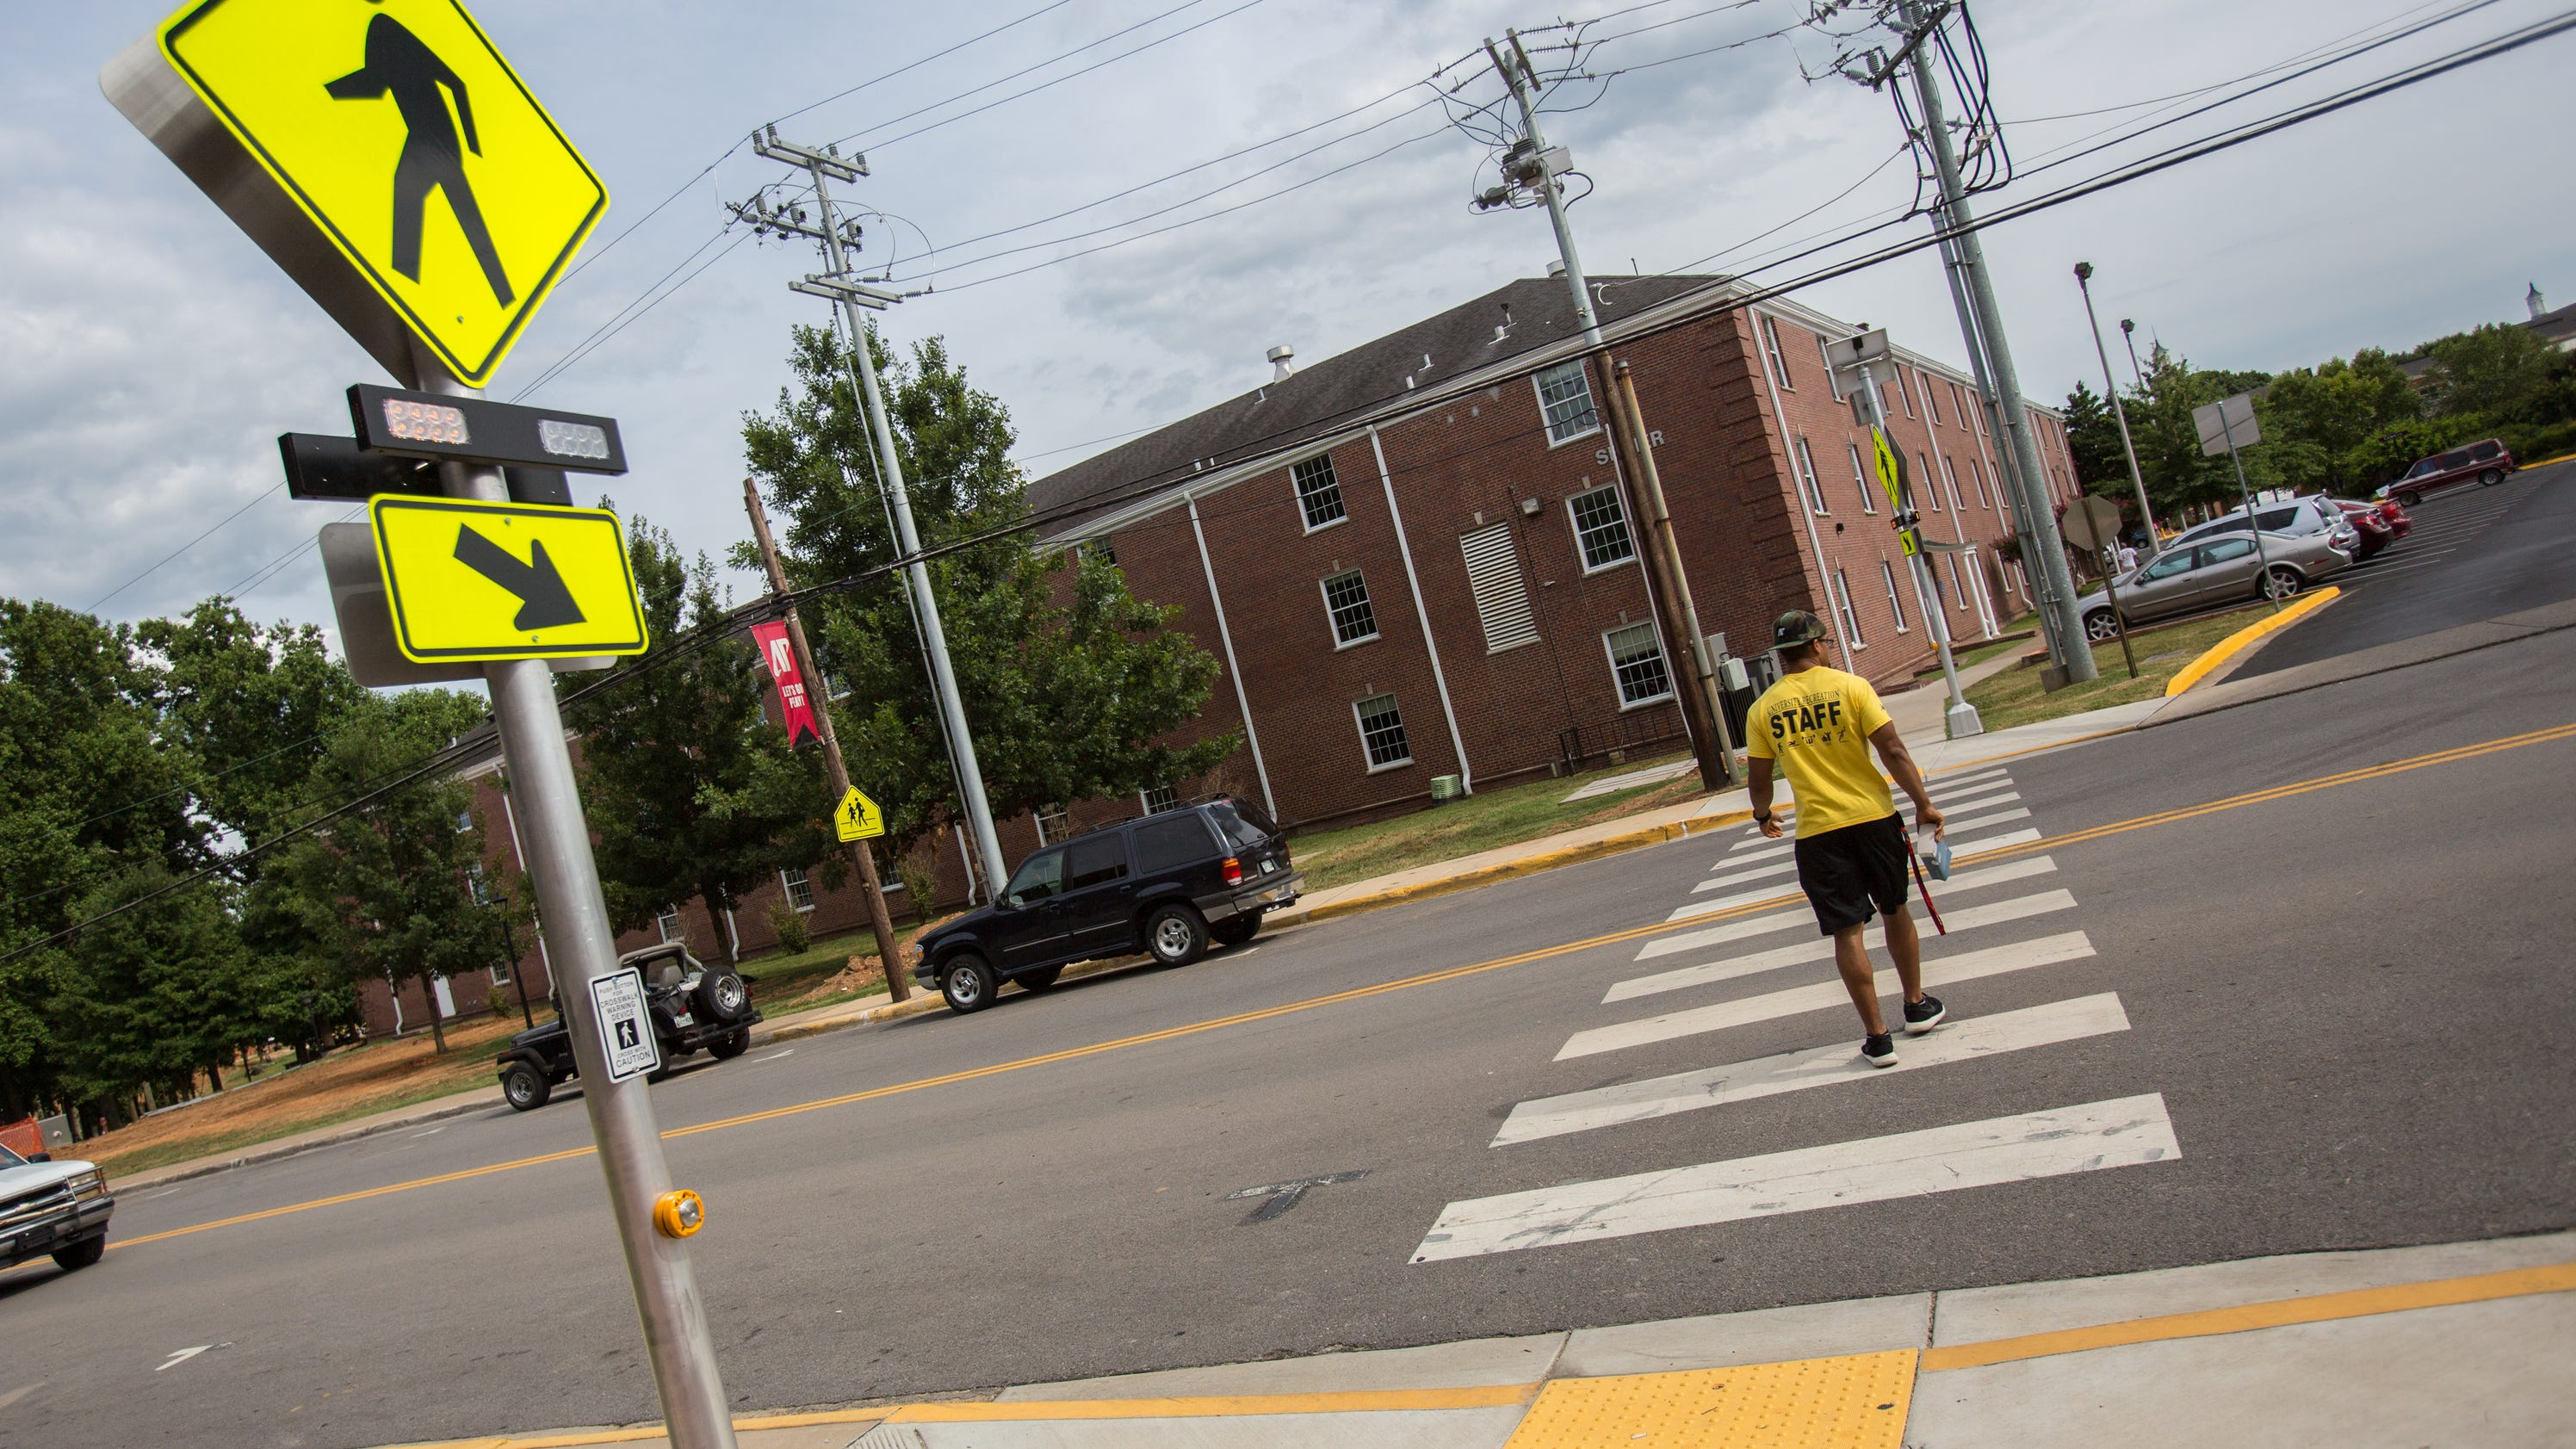 Apsu Installs Solar Powered Crosswalk Signals